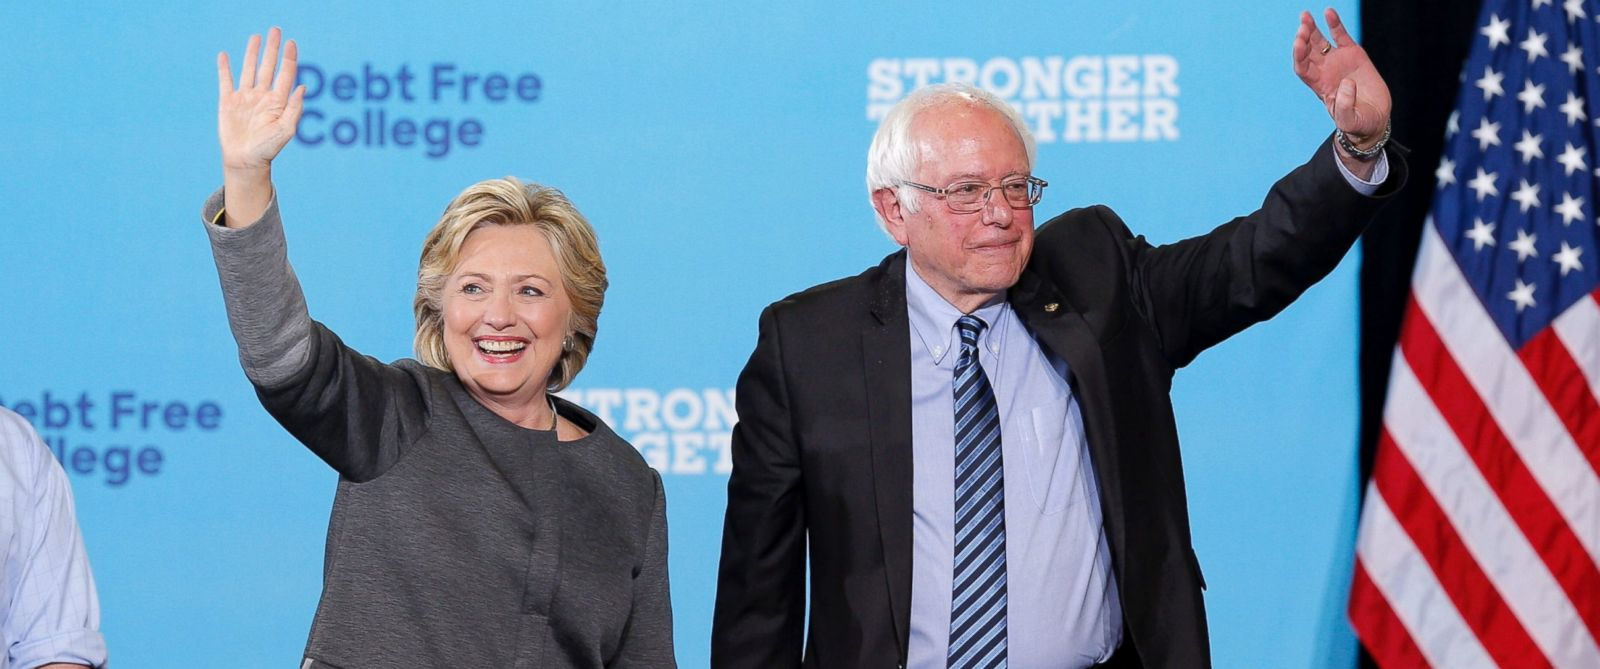 world hillary clinton relying bernie sanders says brother